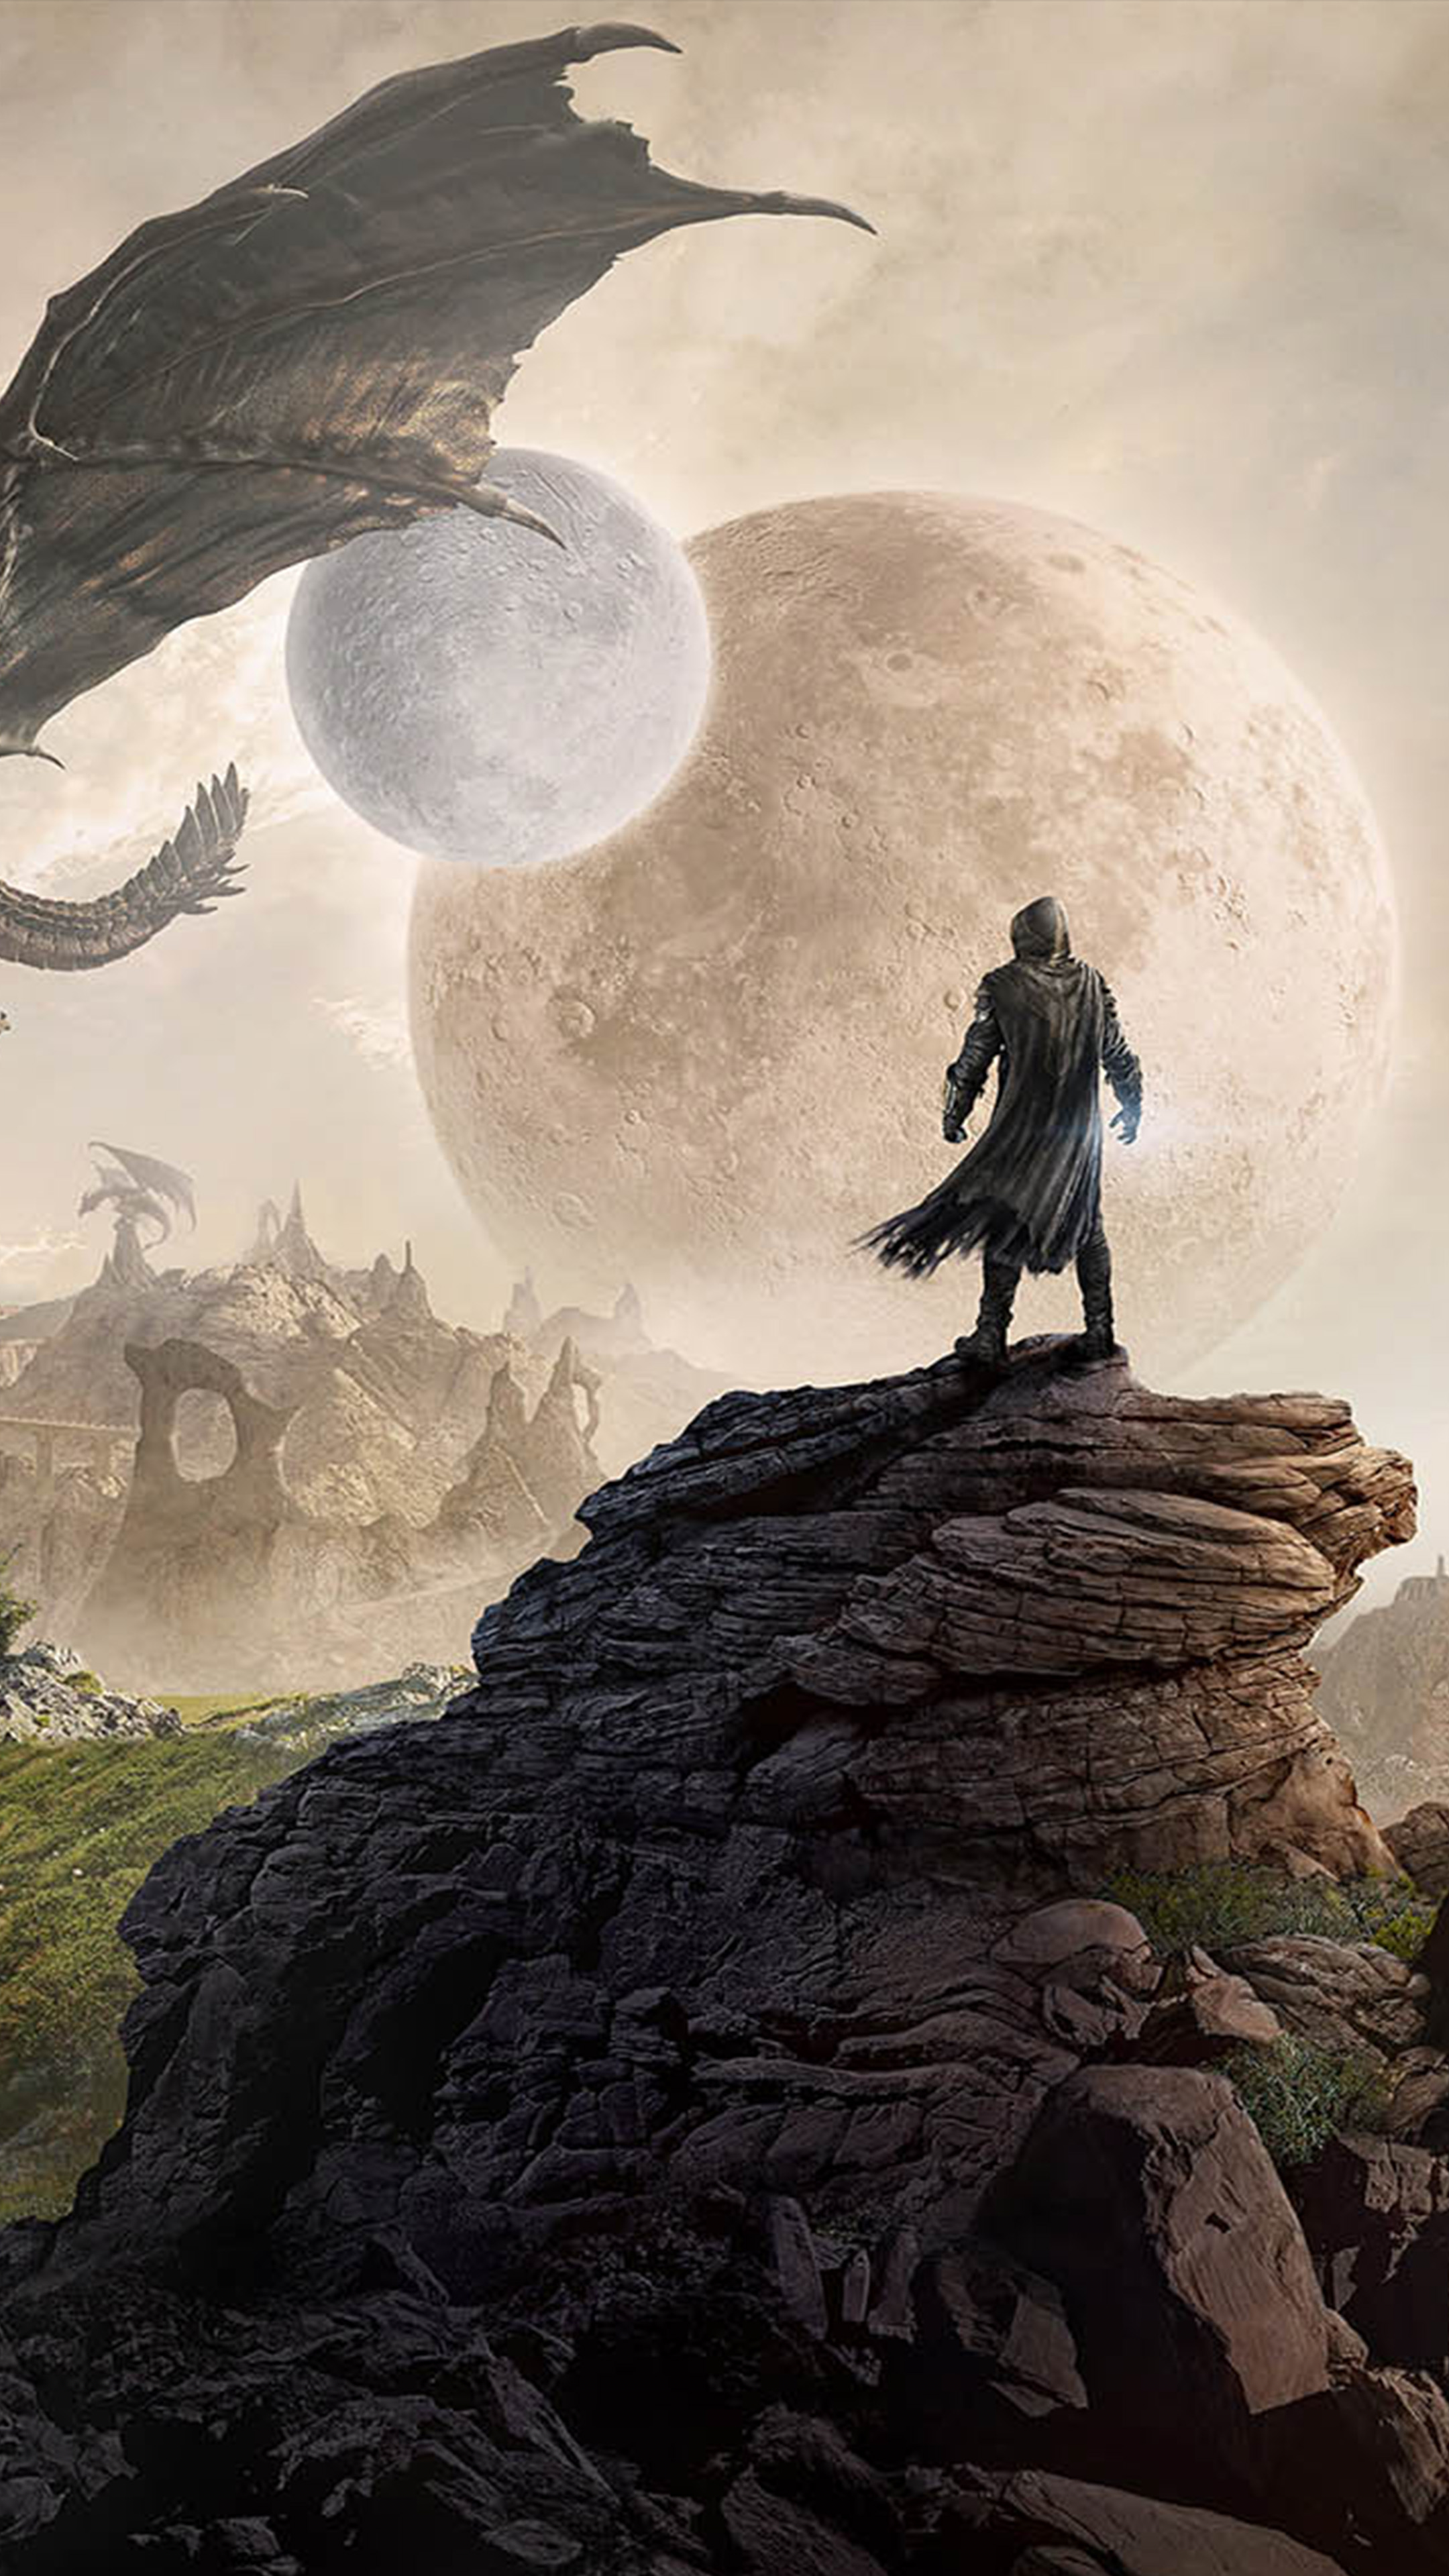 The Elder Scrolls Online Elsweyr Free 4k Ultra Hd Mobile Wallpaper